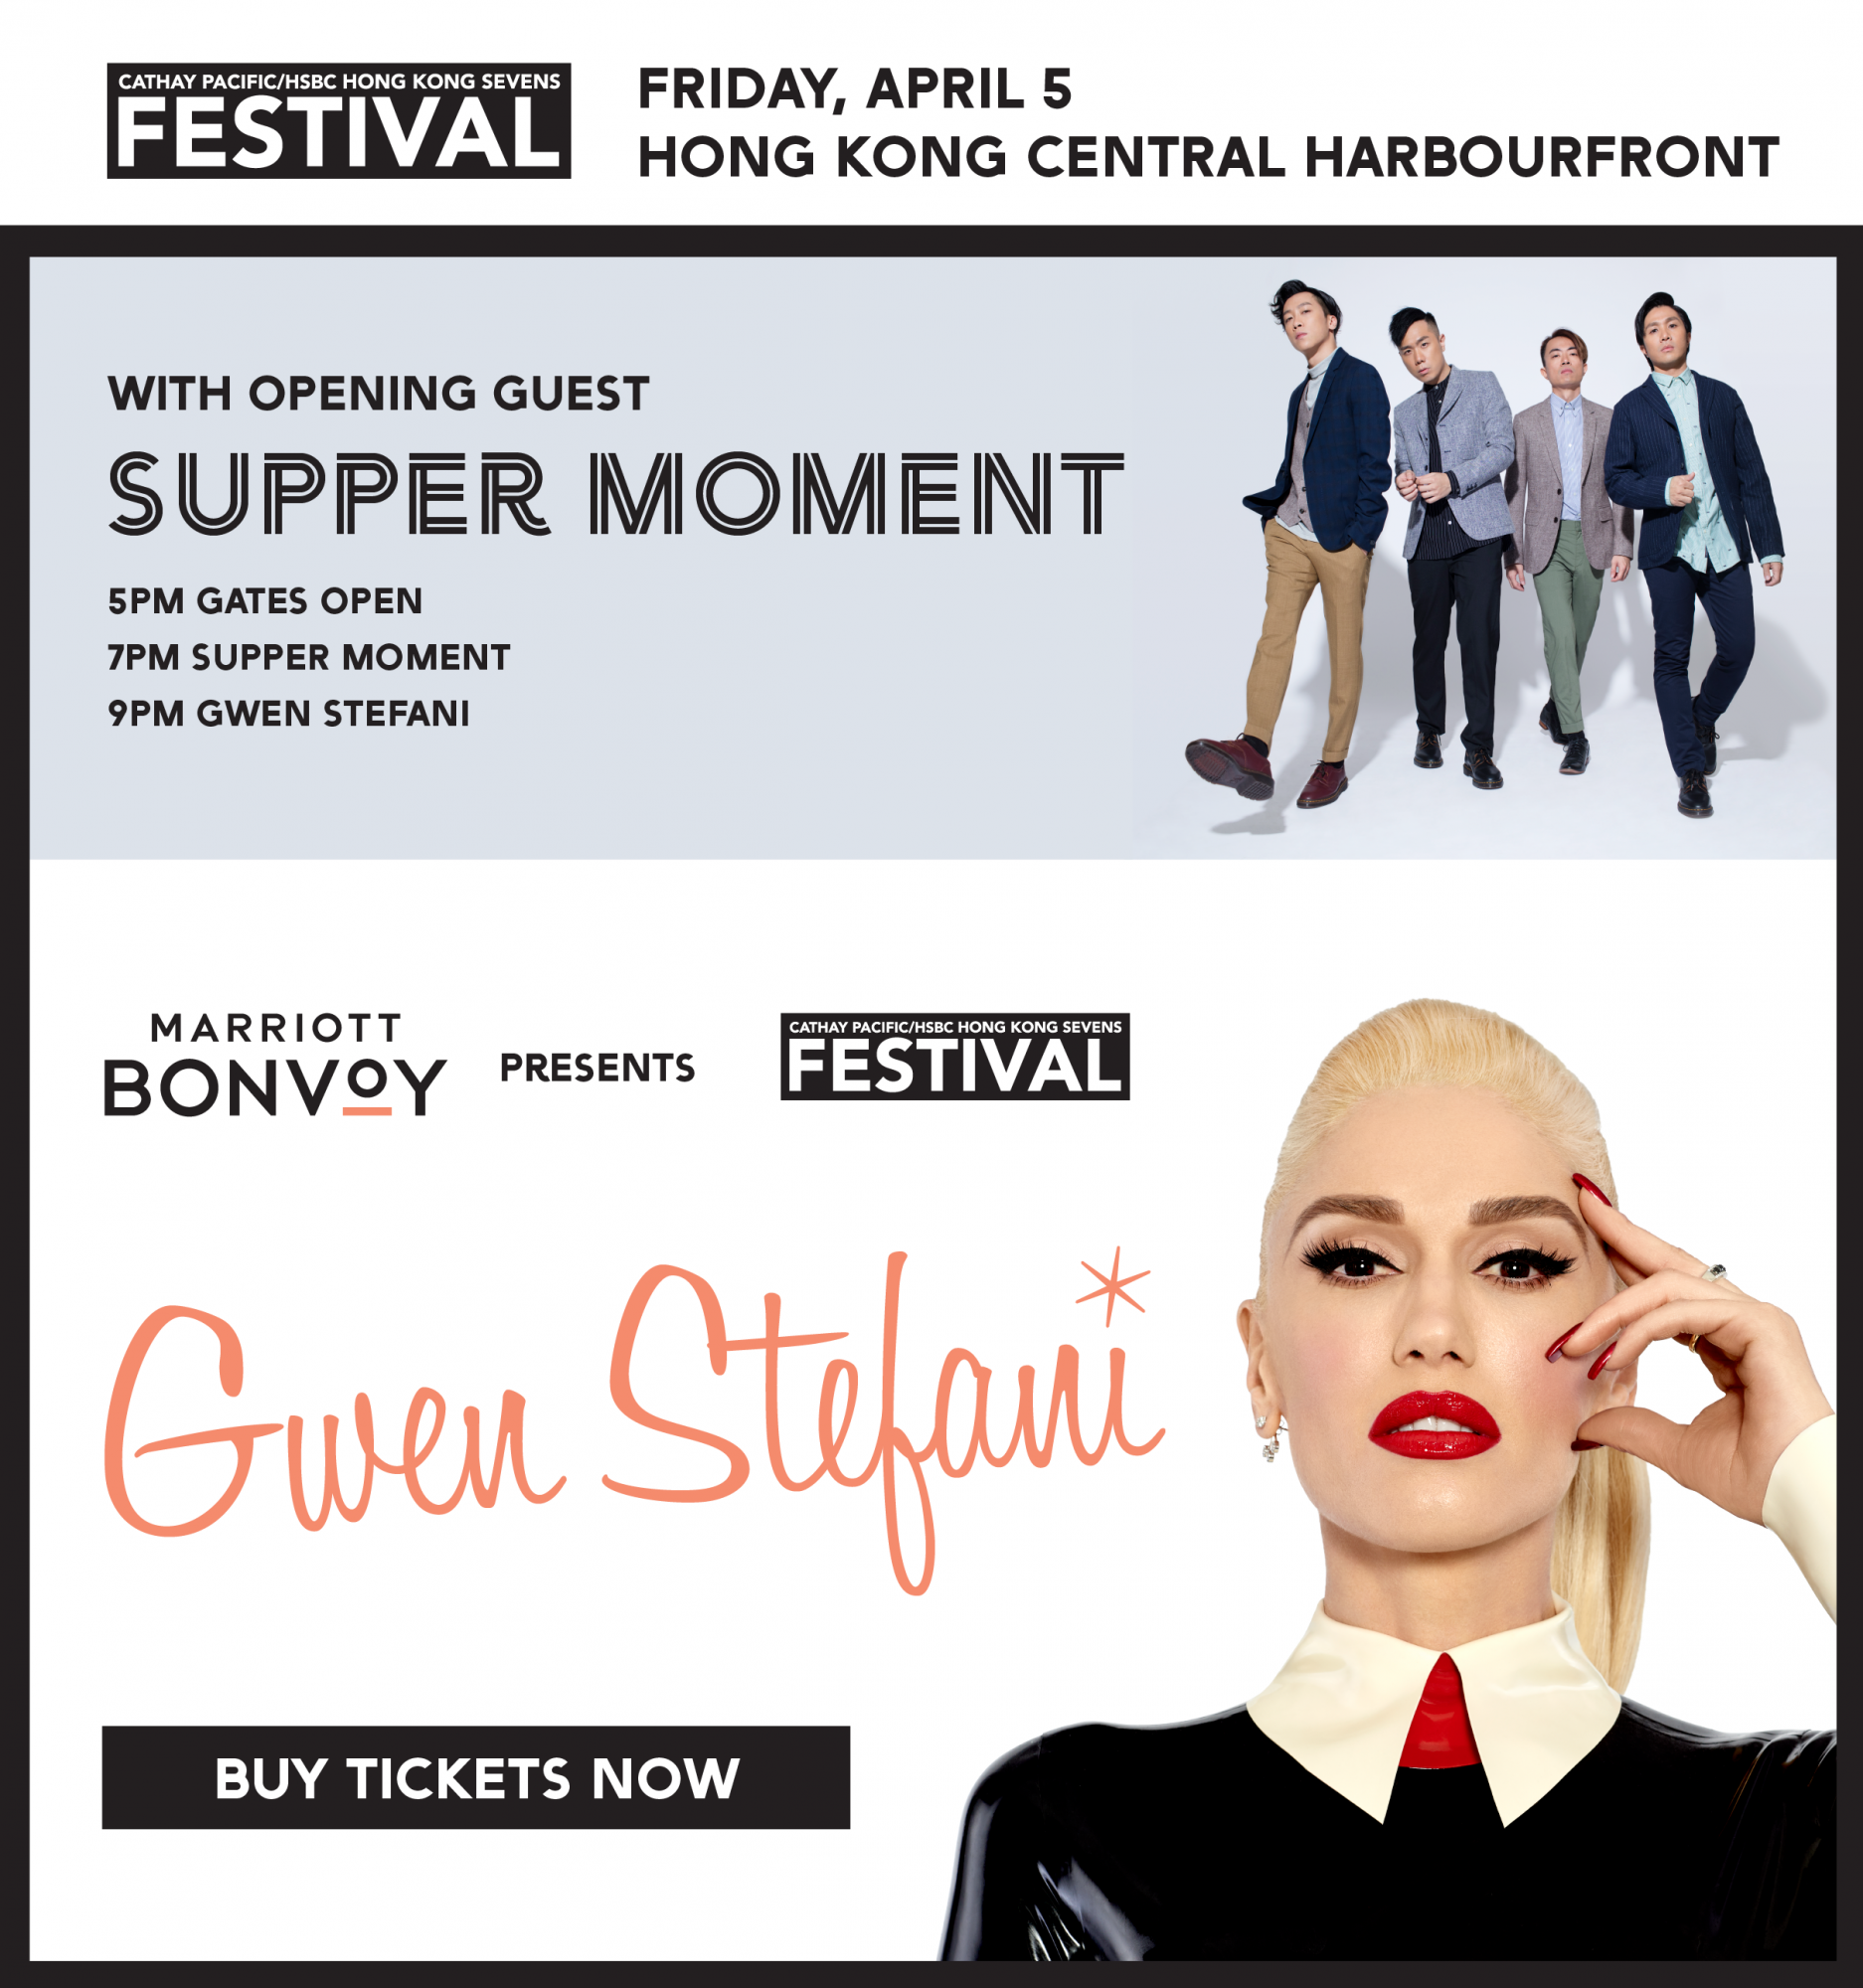 Cathay Pacific/HSBC Hong Kong Sevens Festival | Gwen Stefani | Presented by Marriott Bonvoy